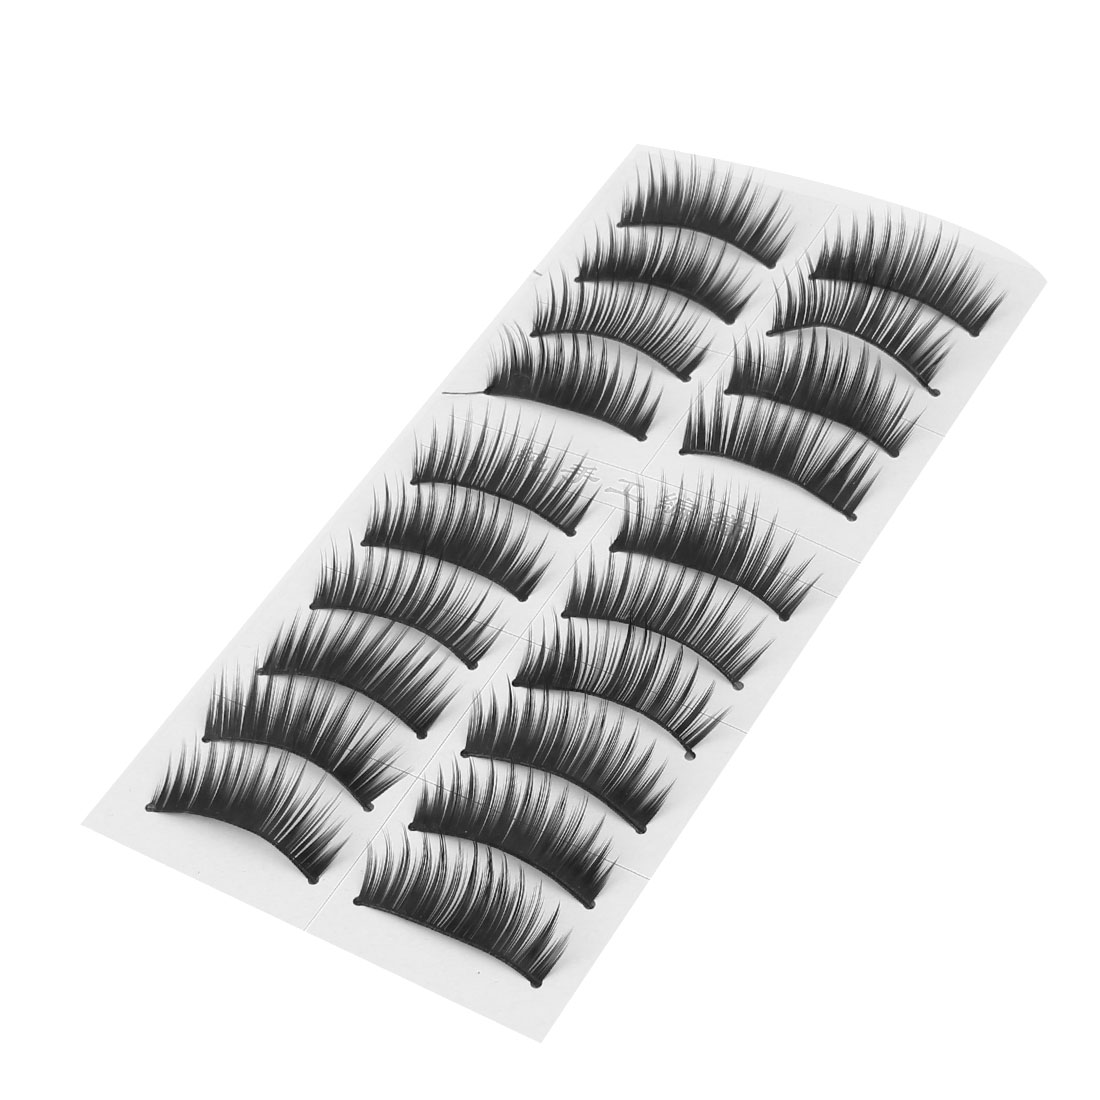 Soft Natural False Eyelashes Fake Lashes Extension 10 Pairs